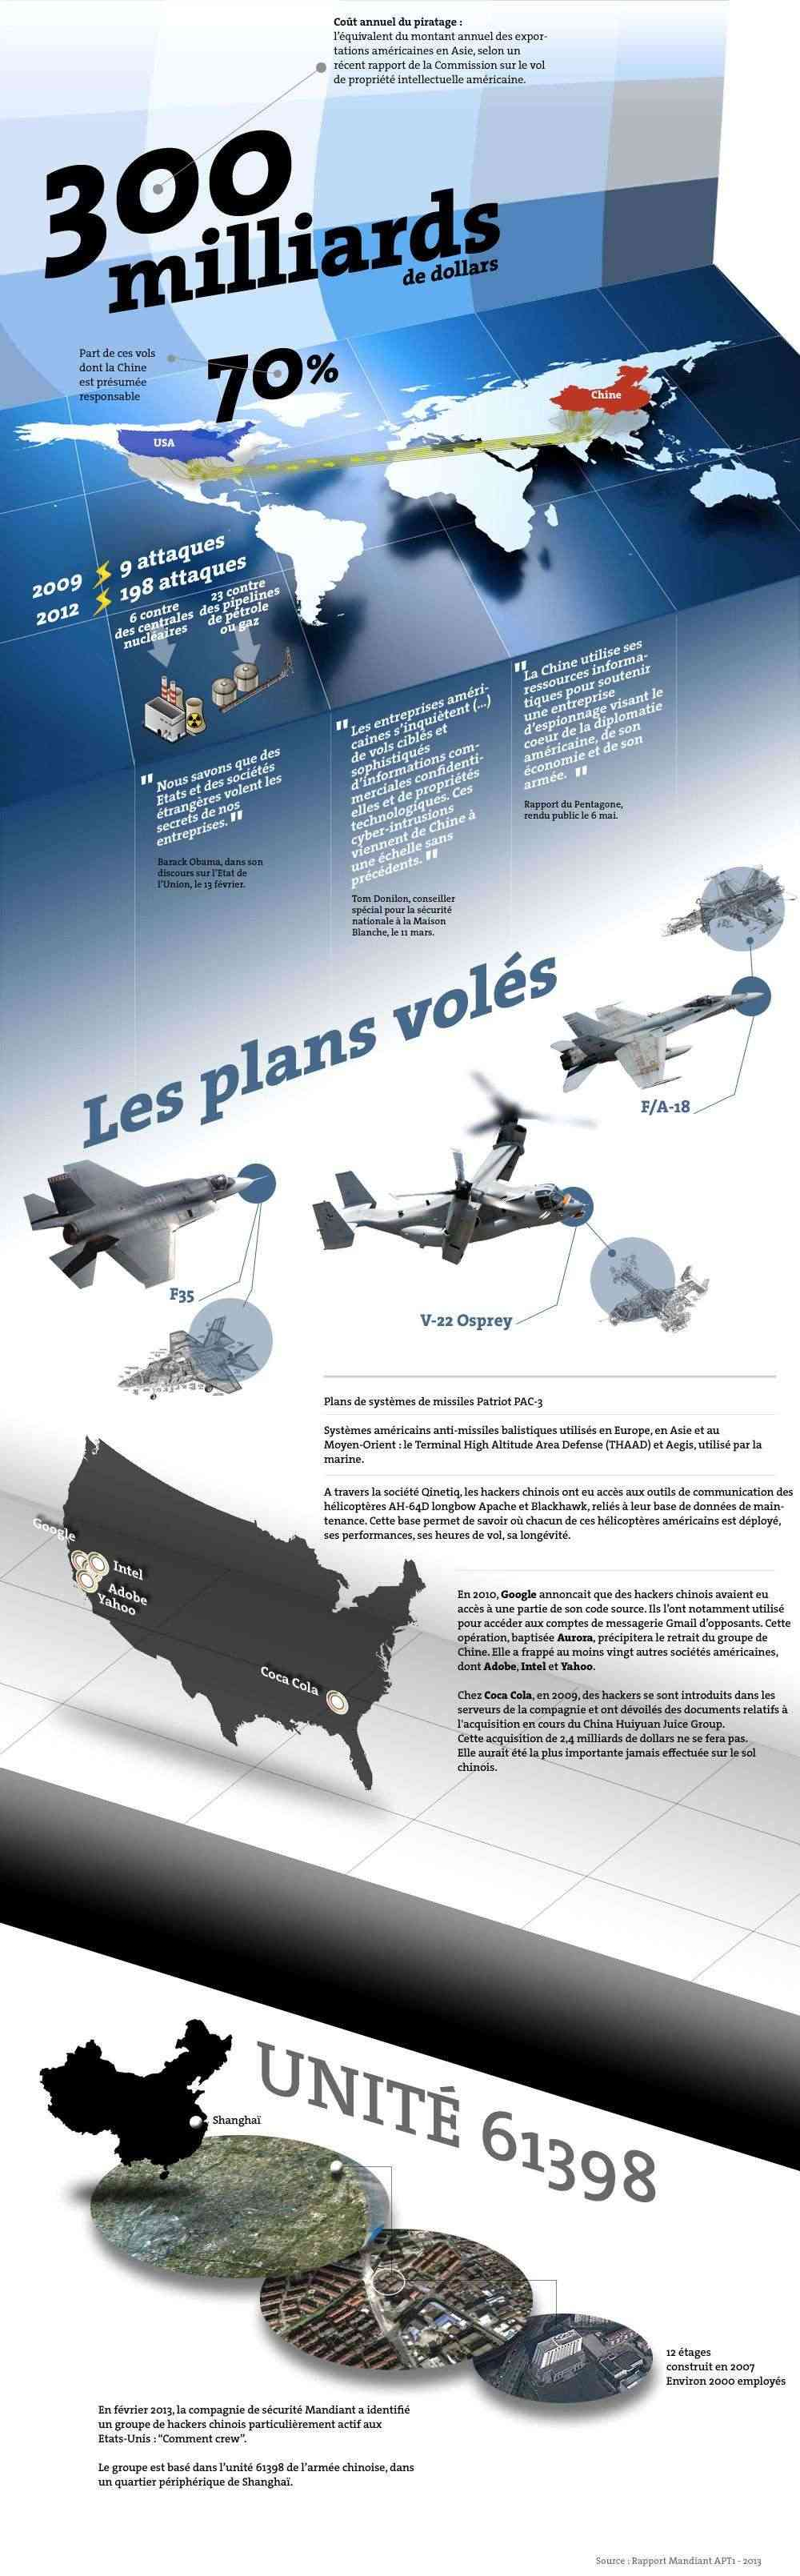 cyber espionage chinois contre US (puis d'autres..) Aaa13